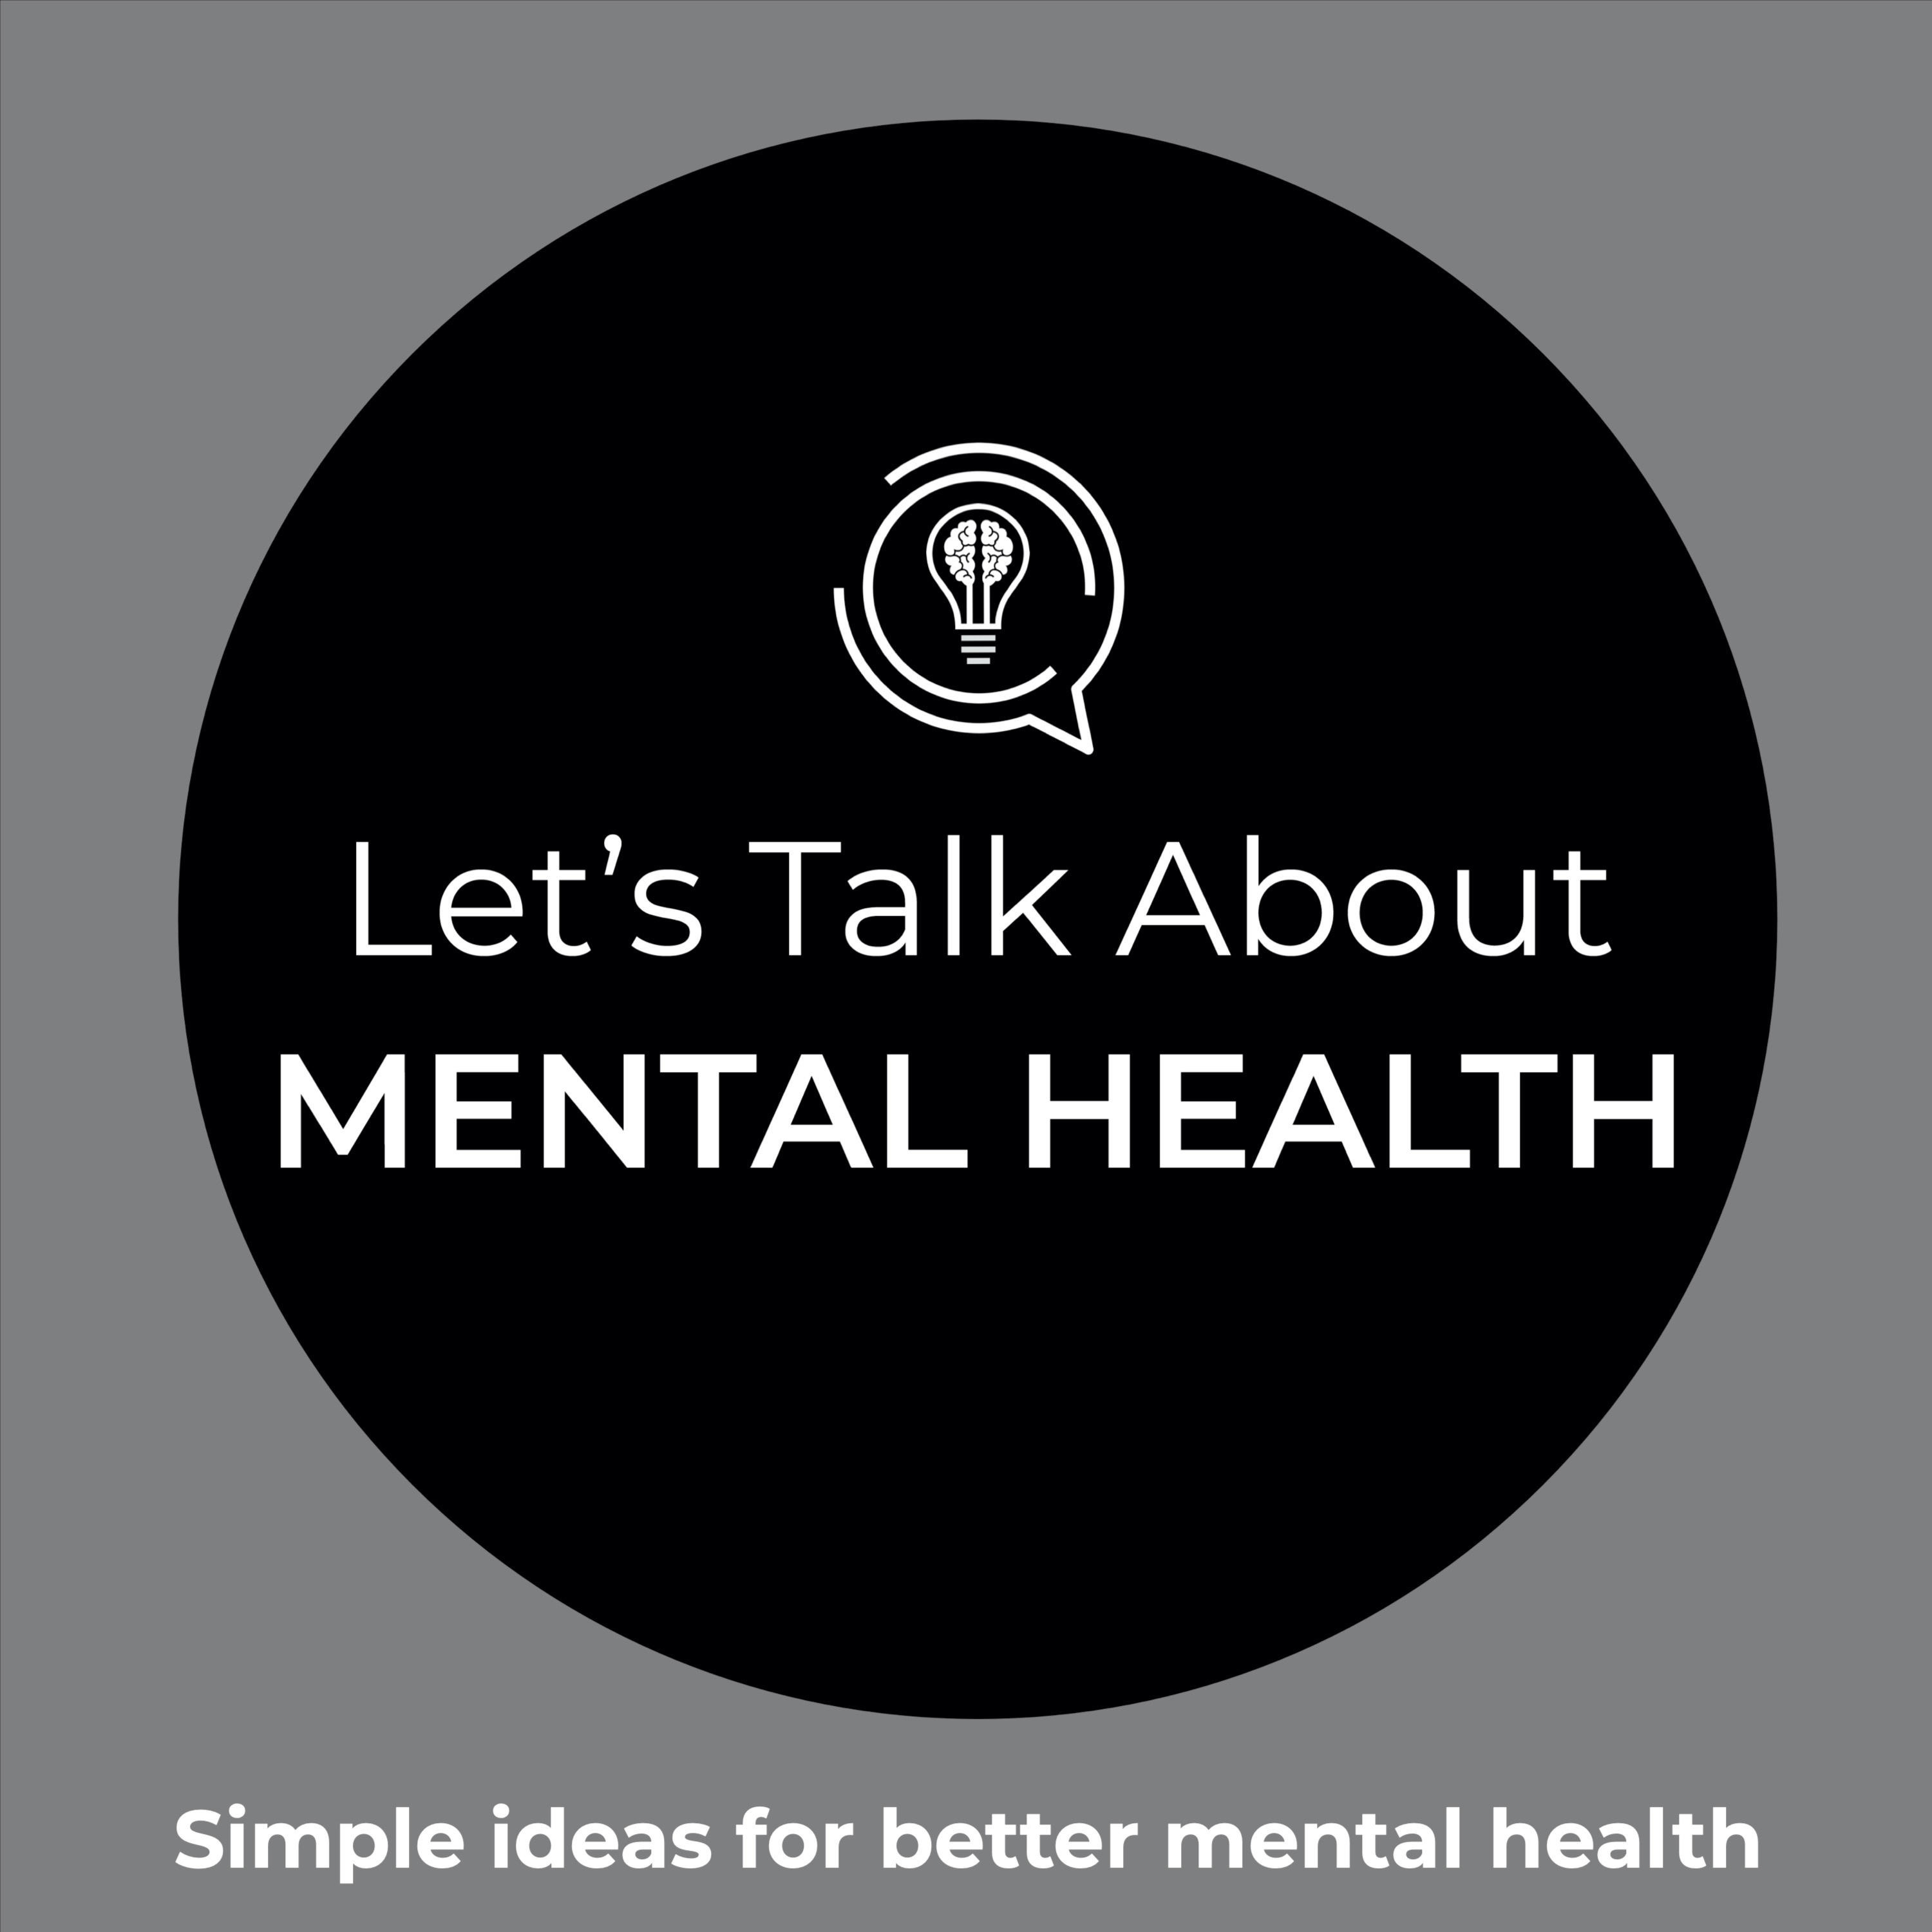 Let's Talk About Mental Health - Let's Talk About Mental Health 2020 trailer